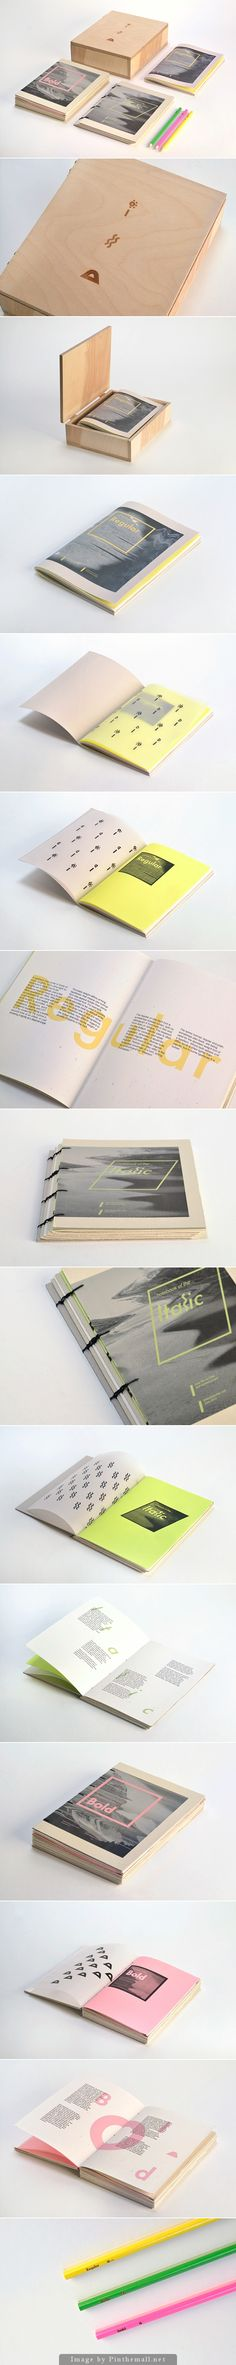 Font Book by Pin-Ju Chen